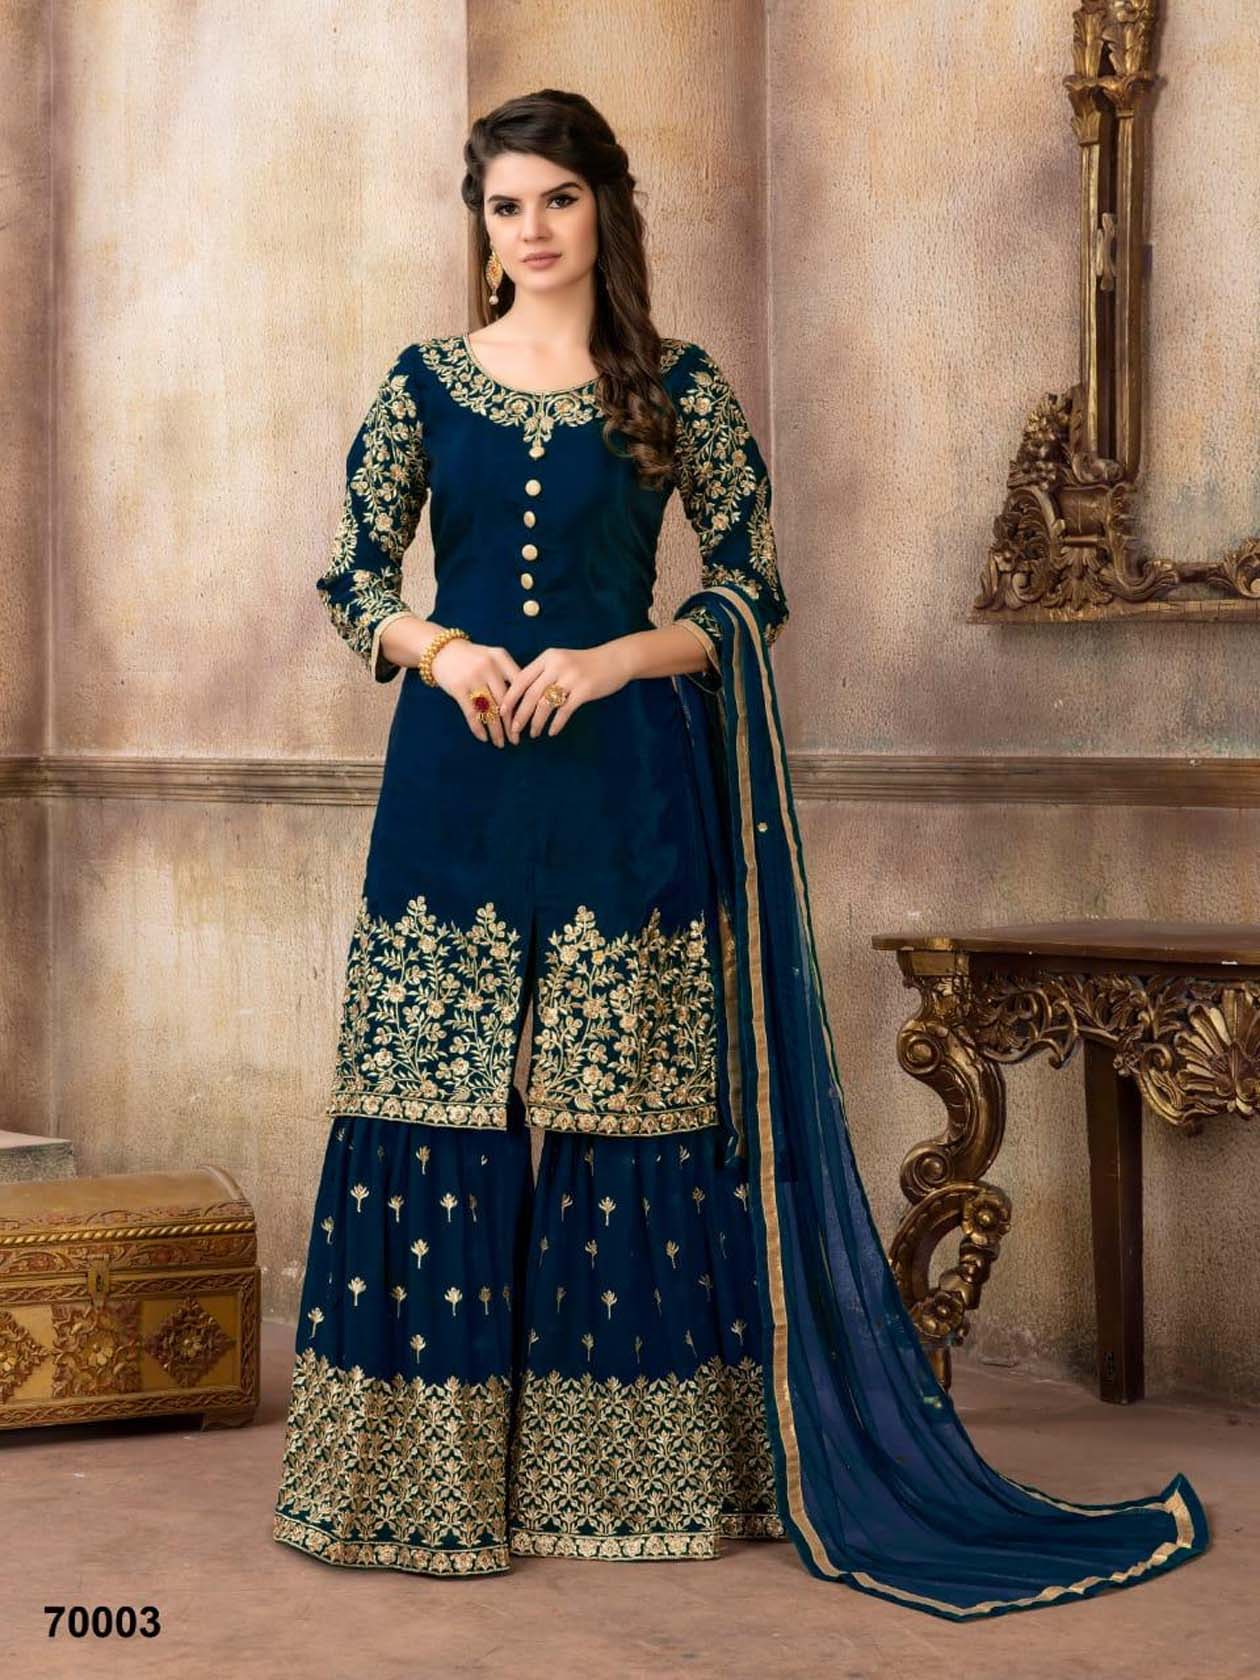 New Bridal Suit Navy Blue Color